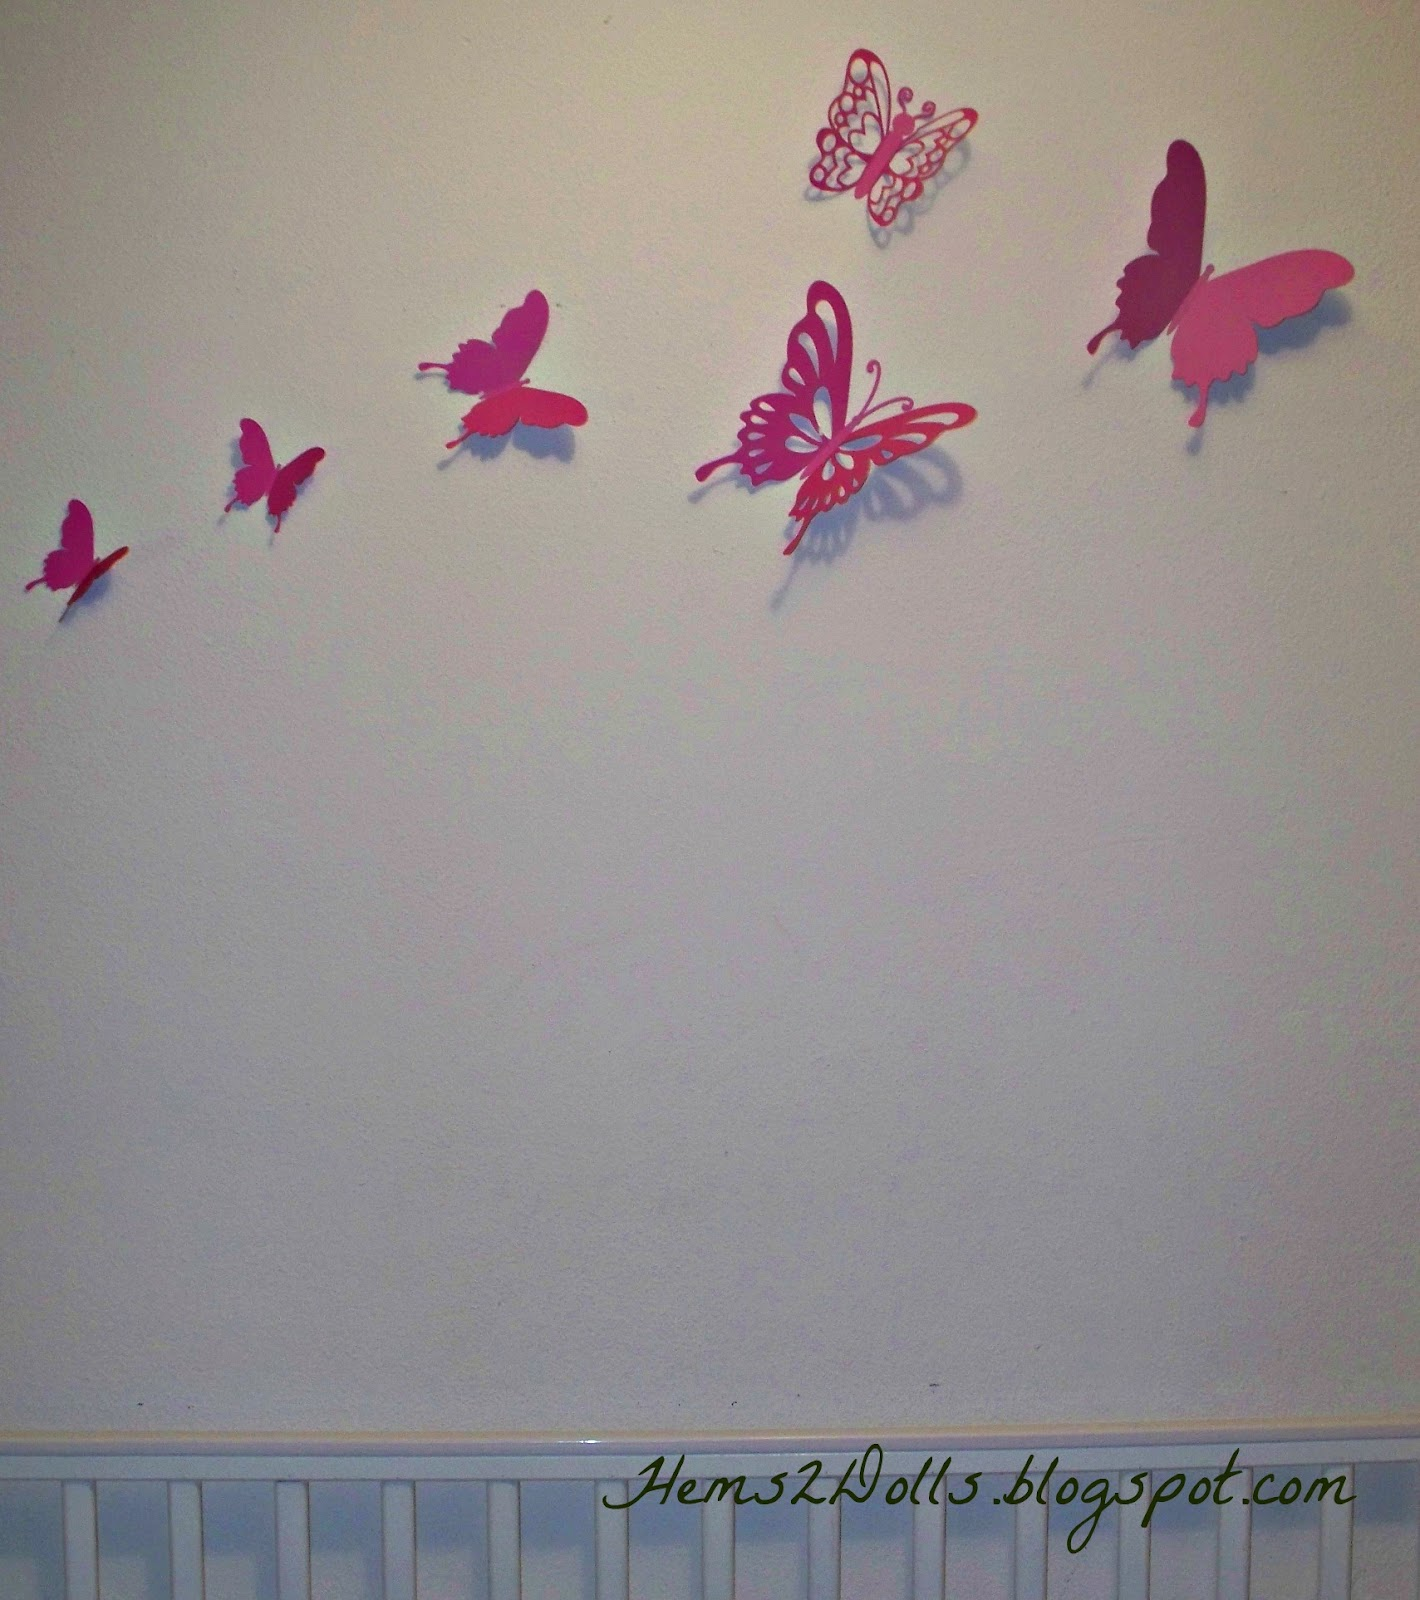 Hanging Butterfly Wall Decor : Hems to dolls my craft room chronicles butterfly wall decor